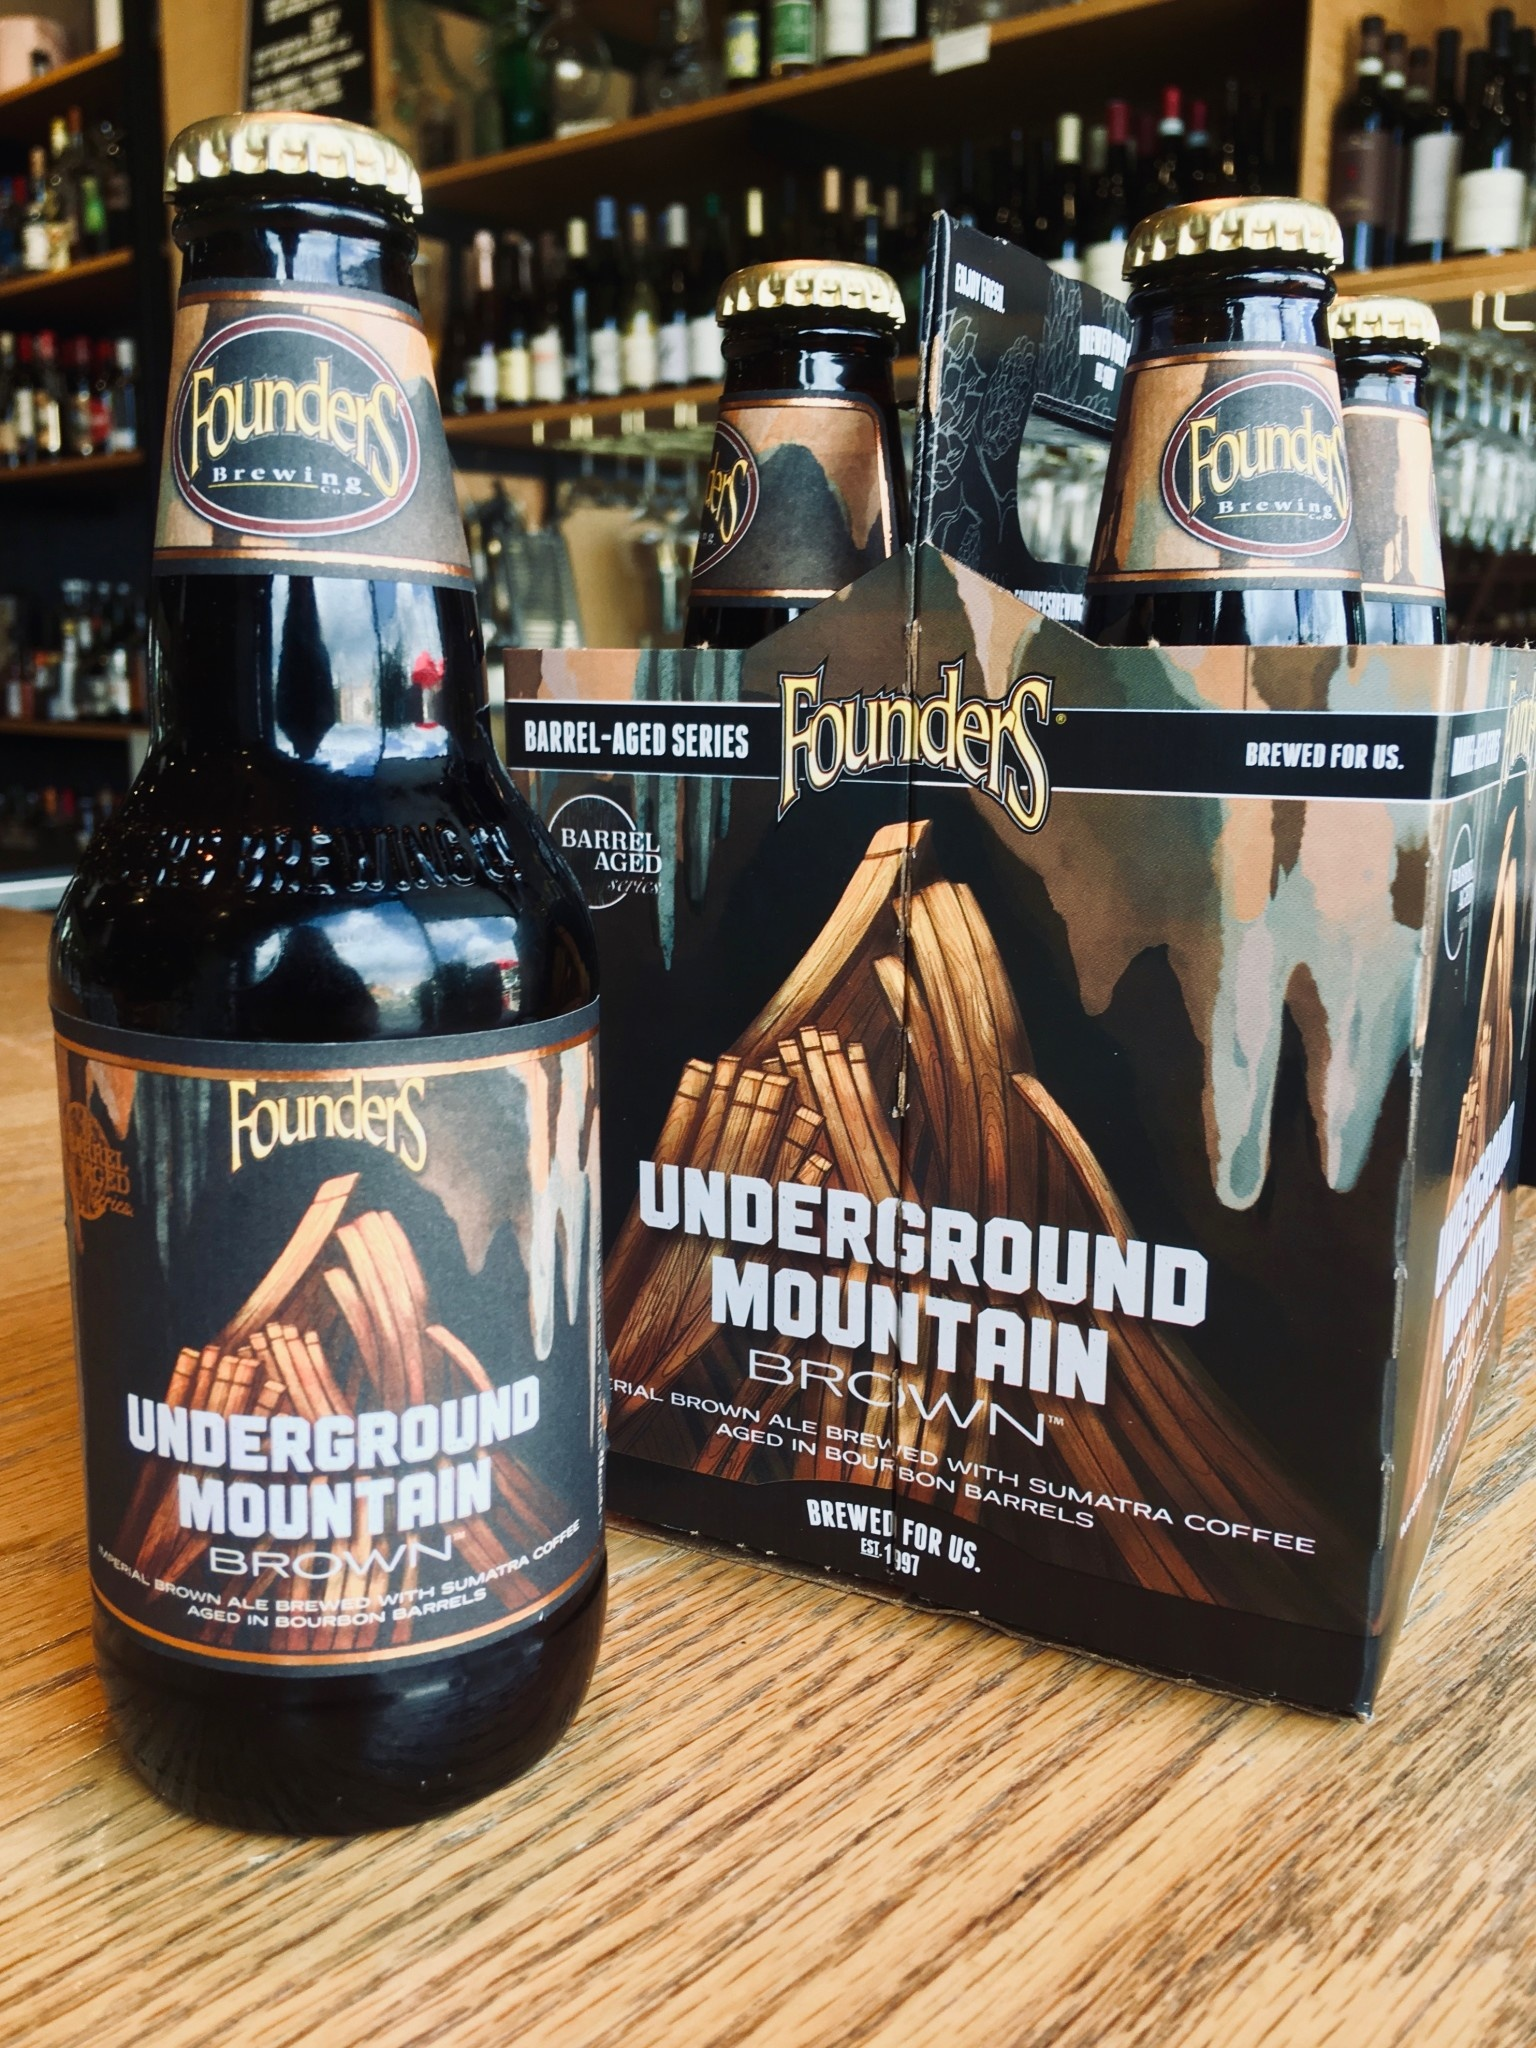 Founders Brewing Founder's Underground Mountain Brown 12oz 4pk